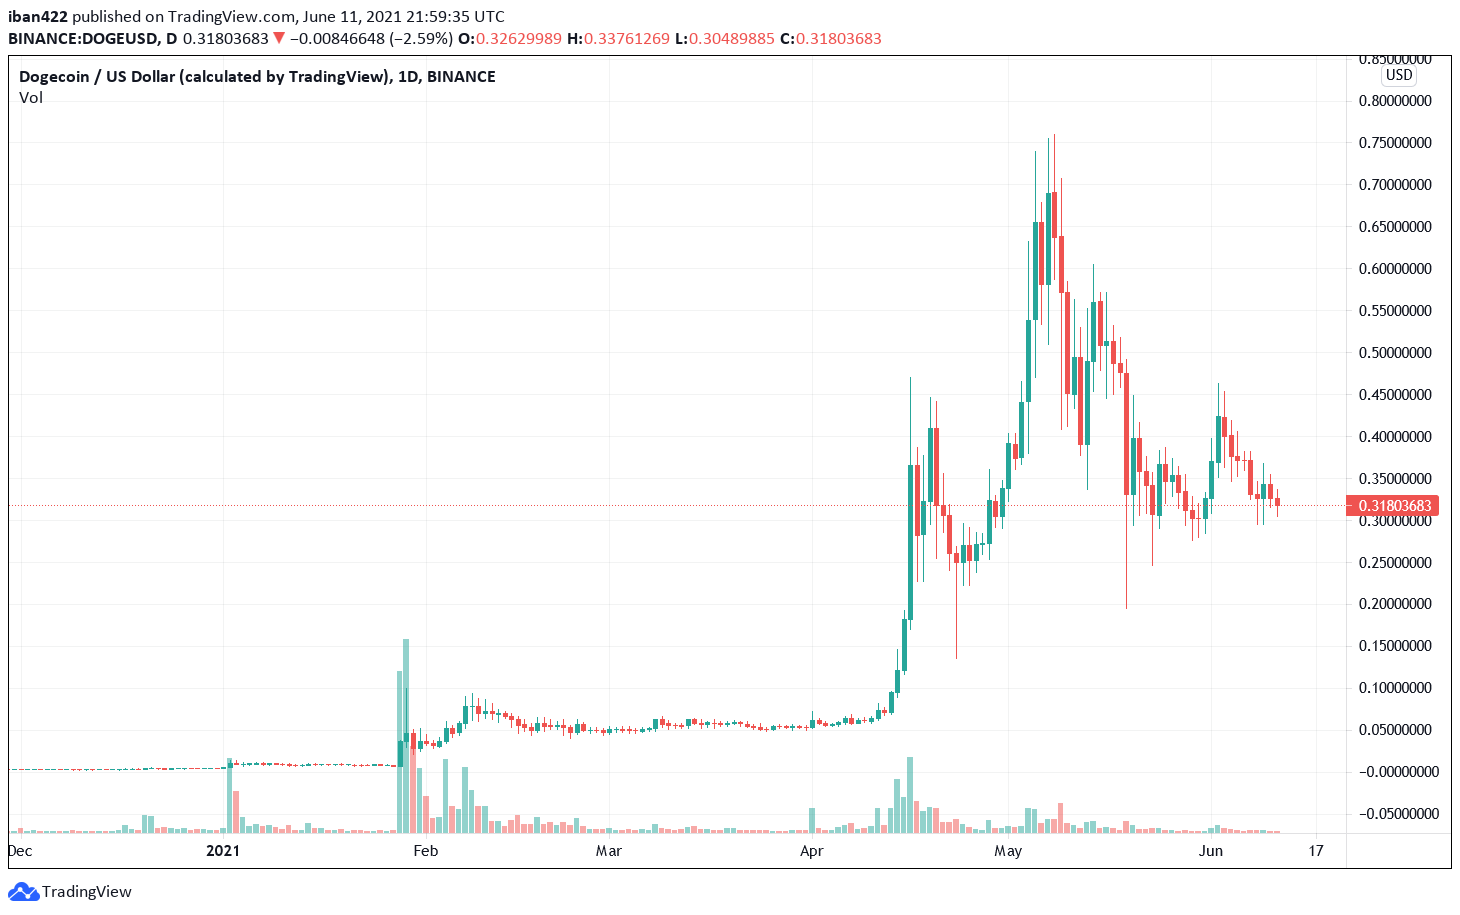 dogecoin peaked at 70 cents